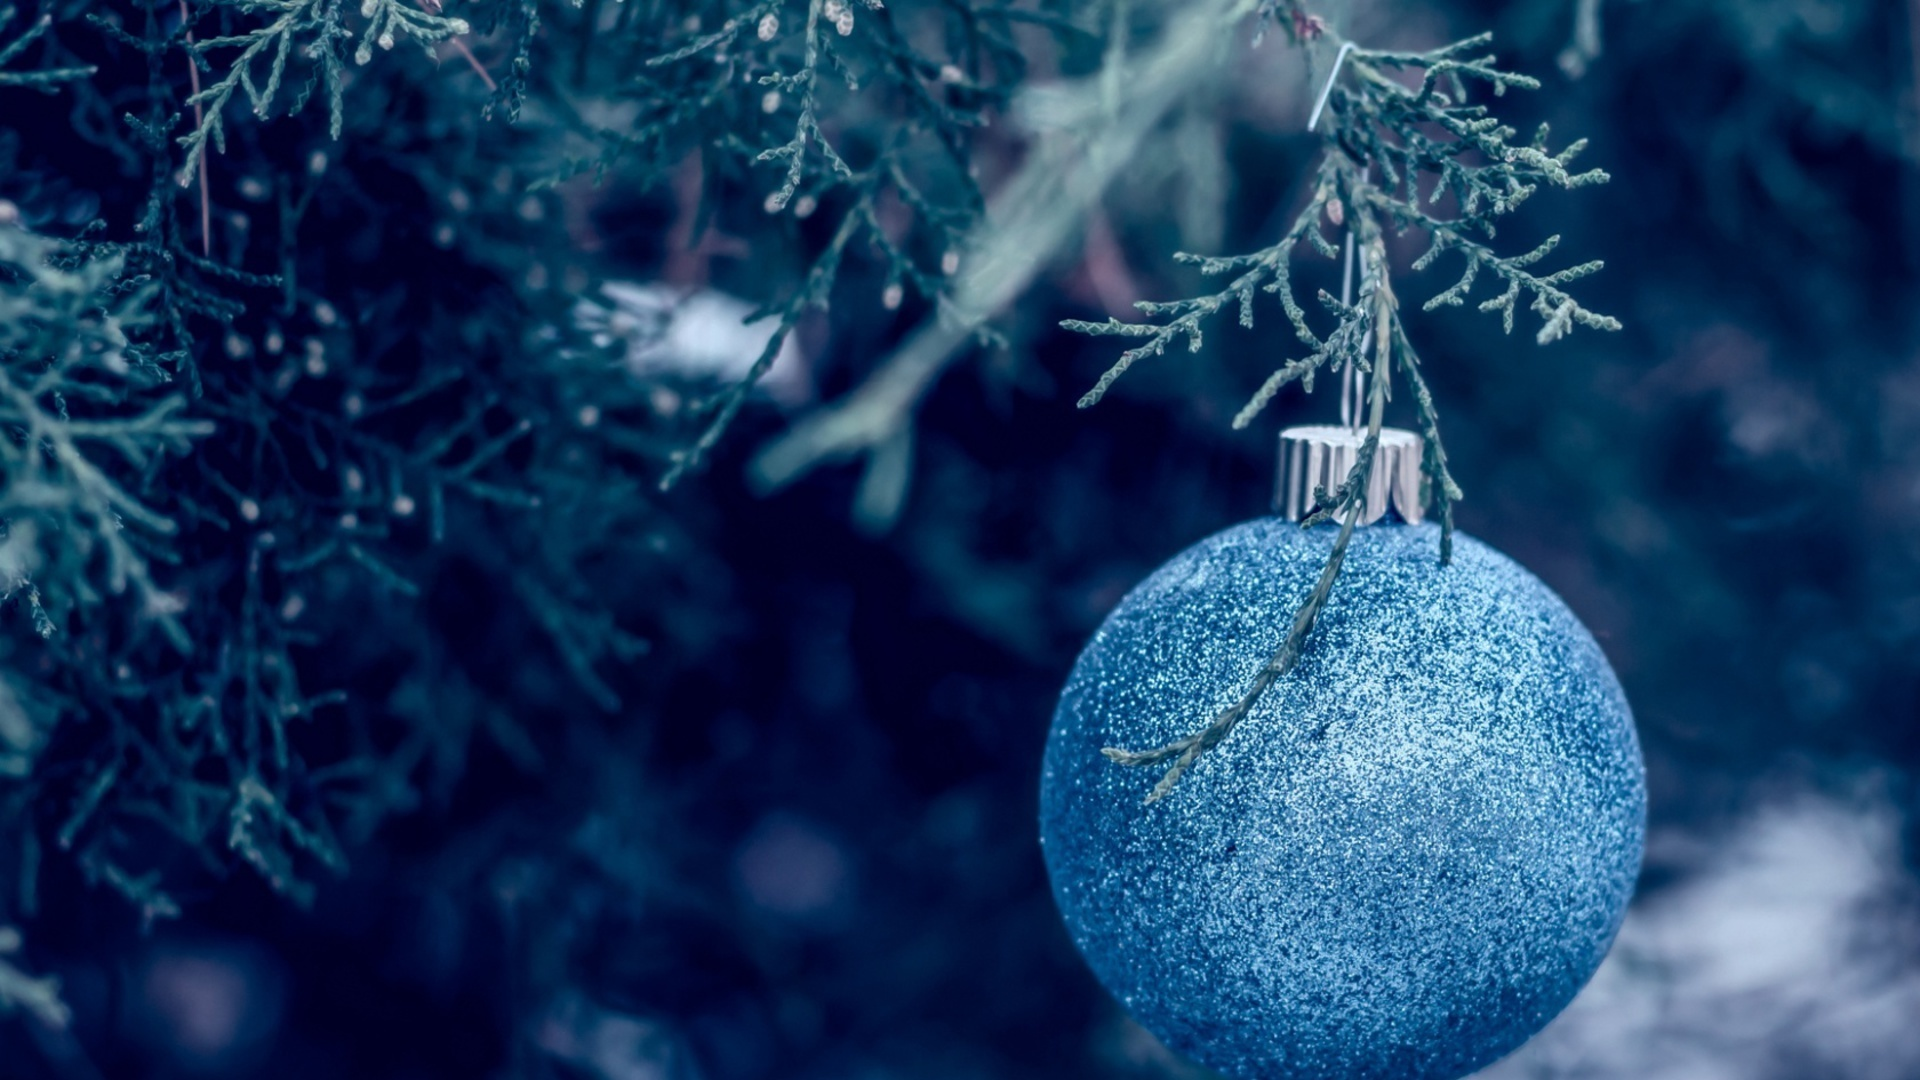 New Year Wallpapers ball tree decorations